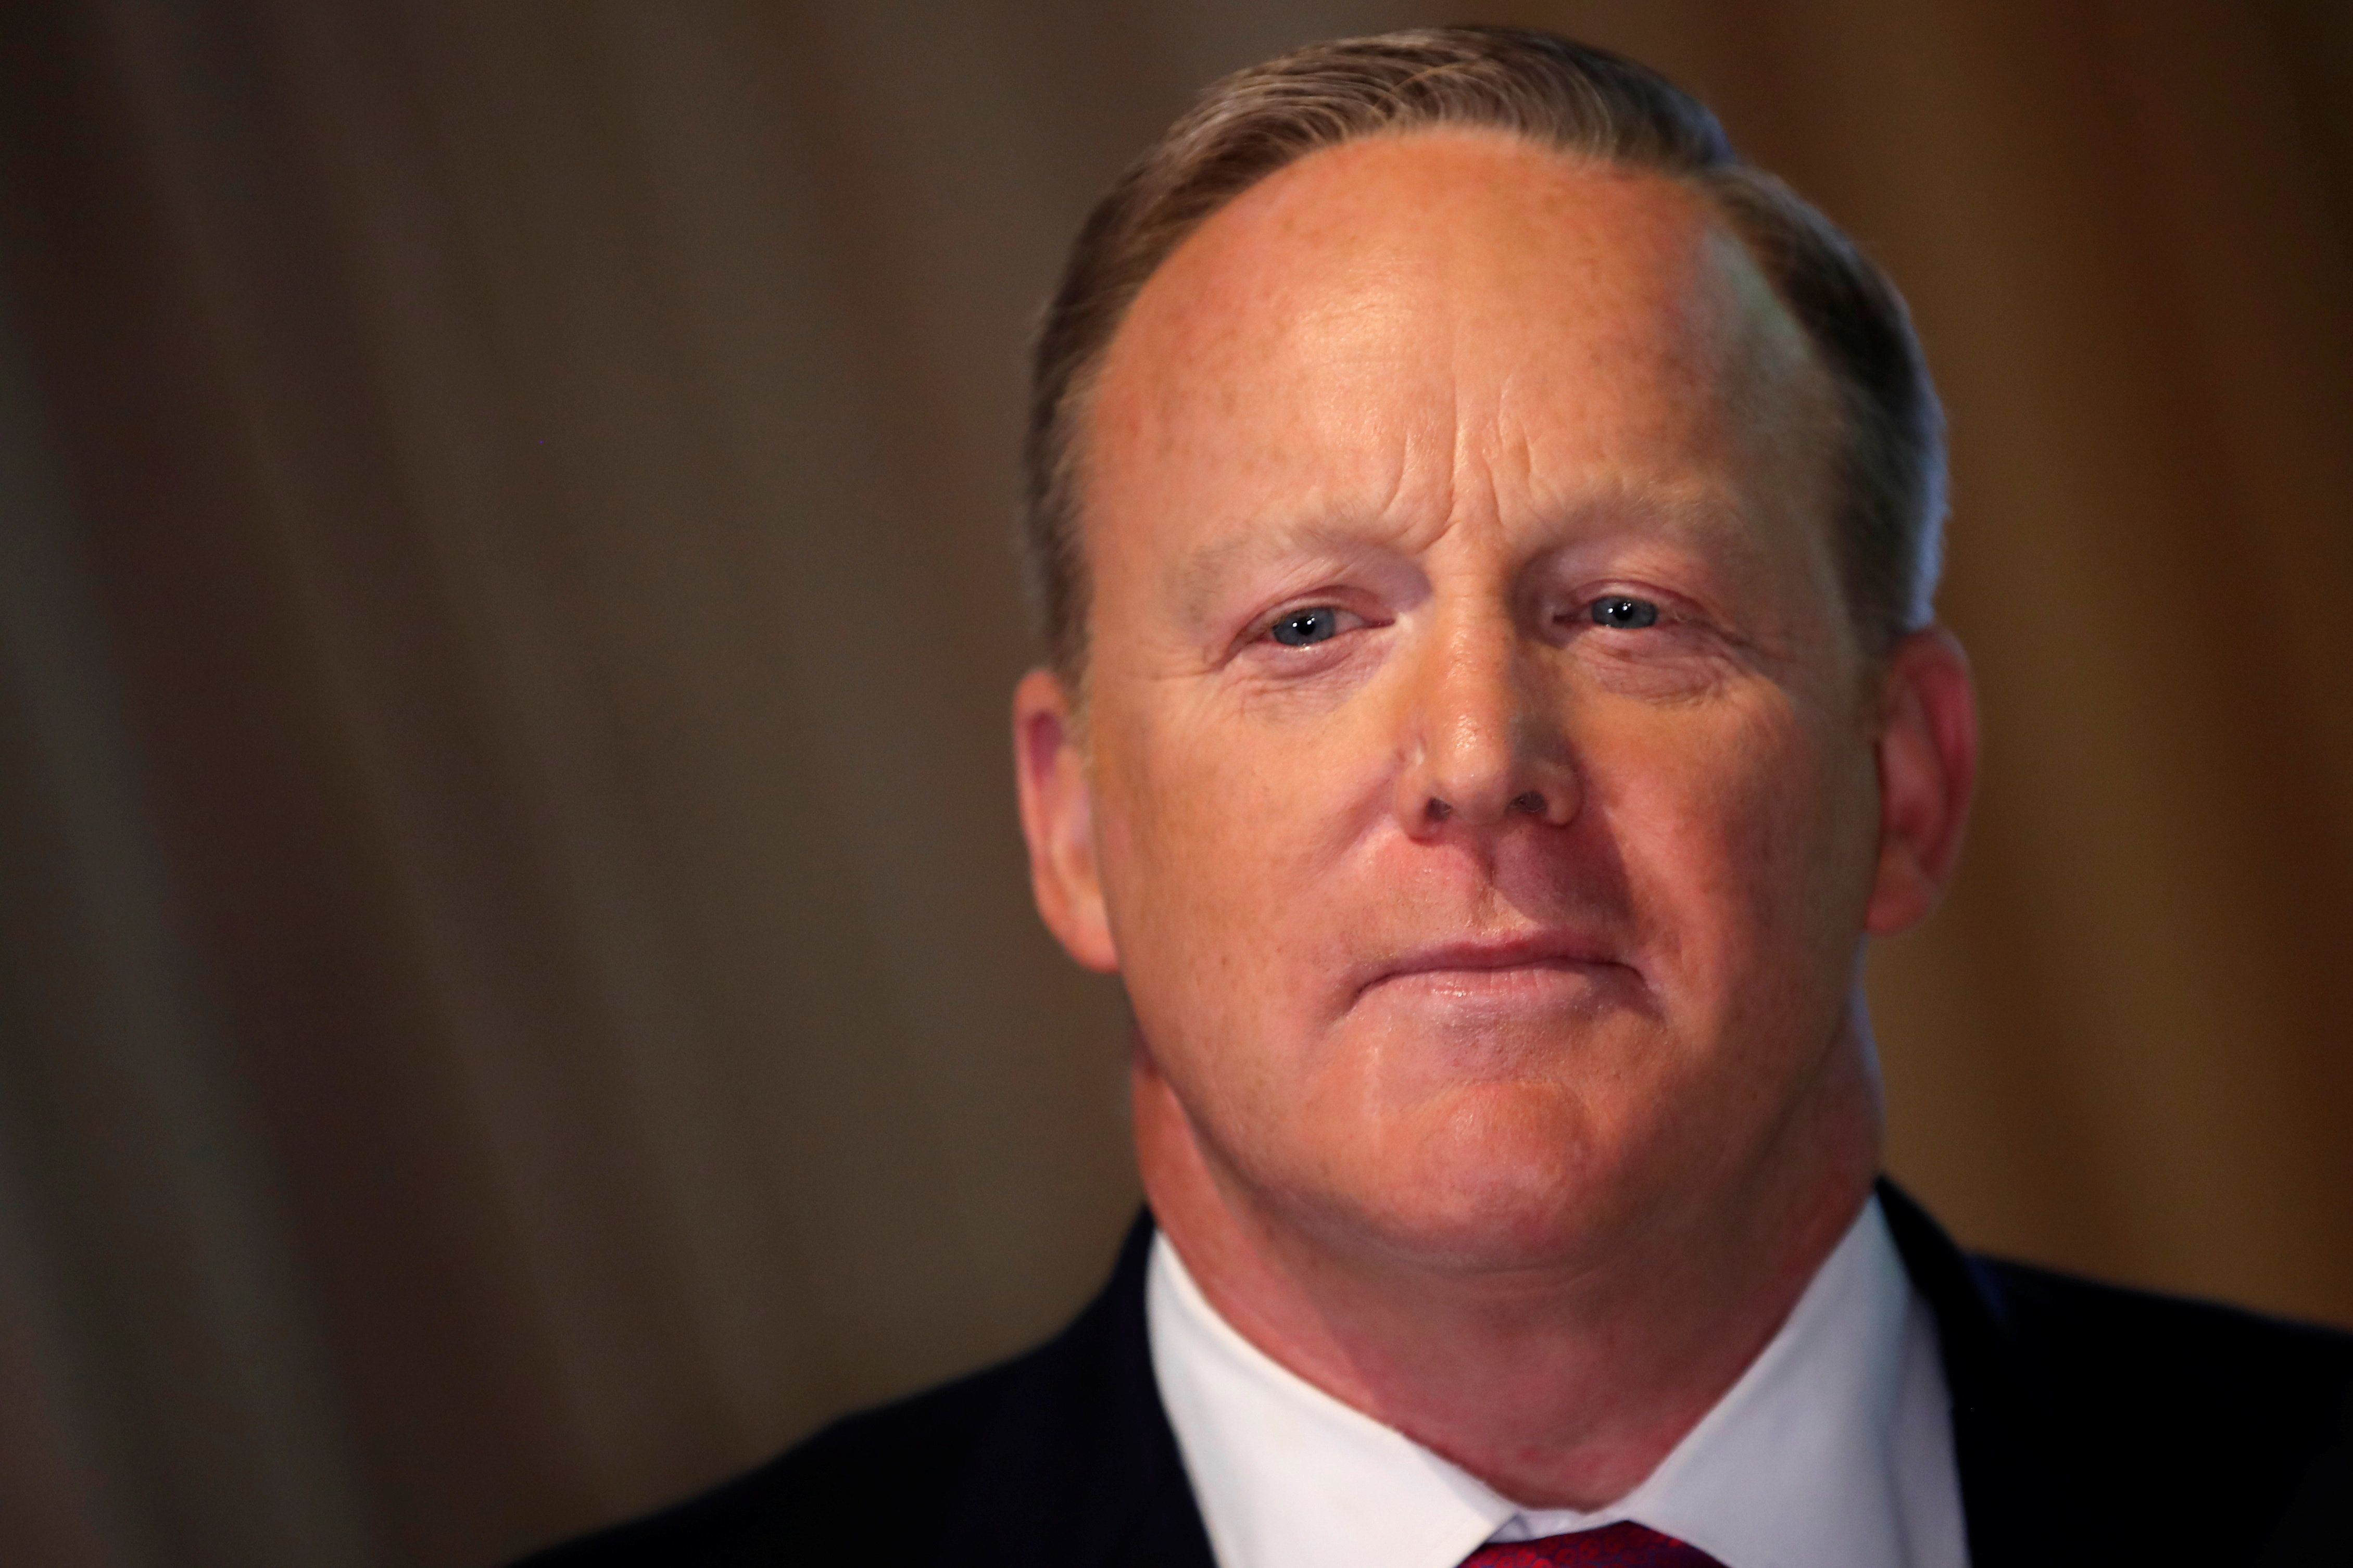 """Former White House Press Secretary Sean Spicer was heckled on Wednesday while promoting his new book """"The Briefing."""""""